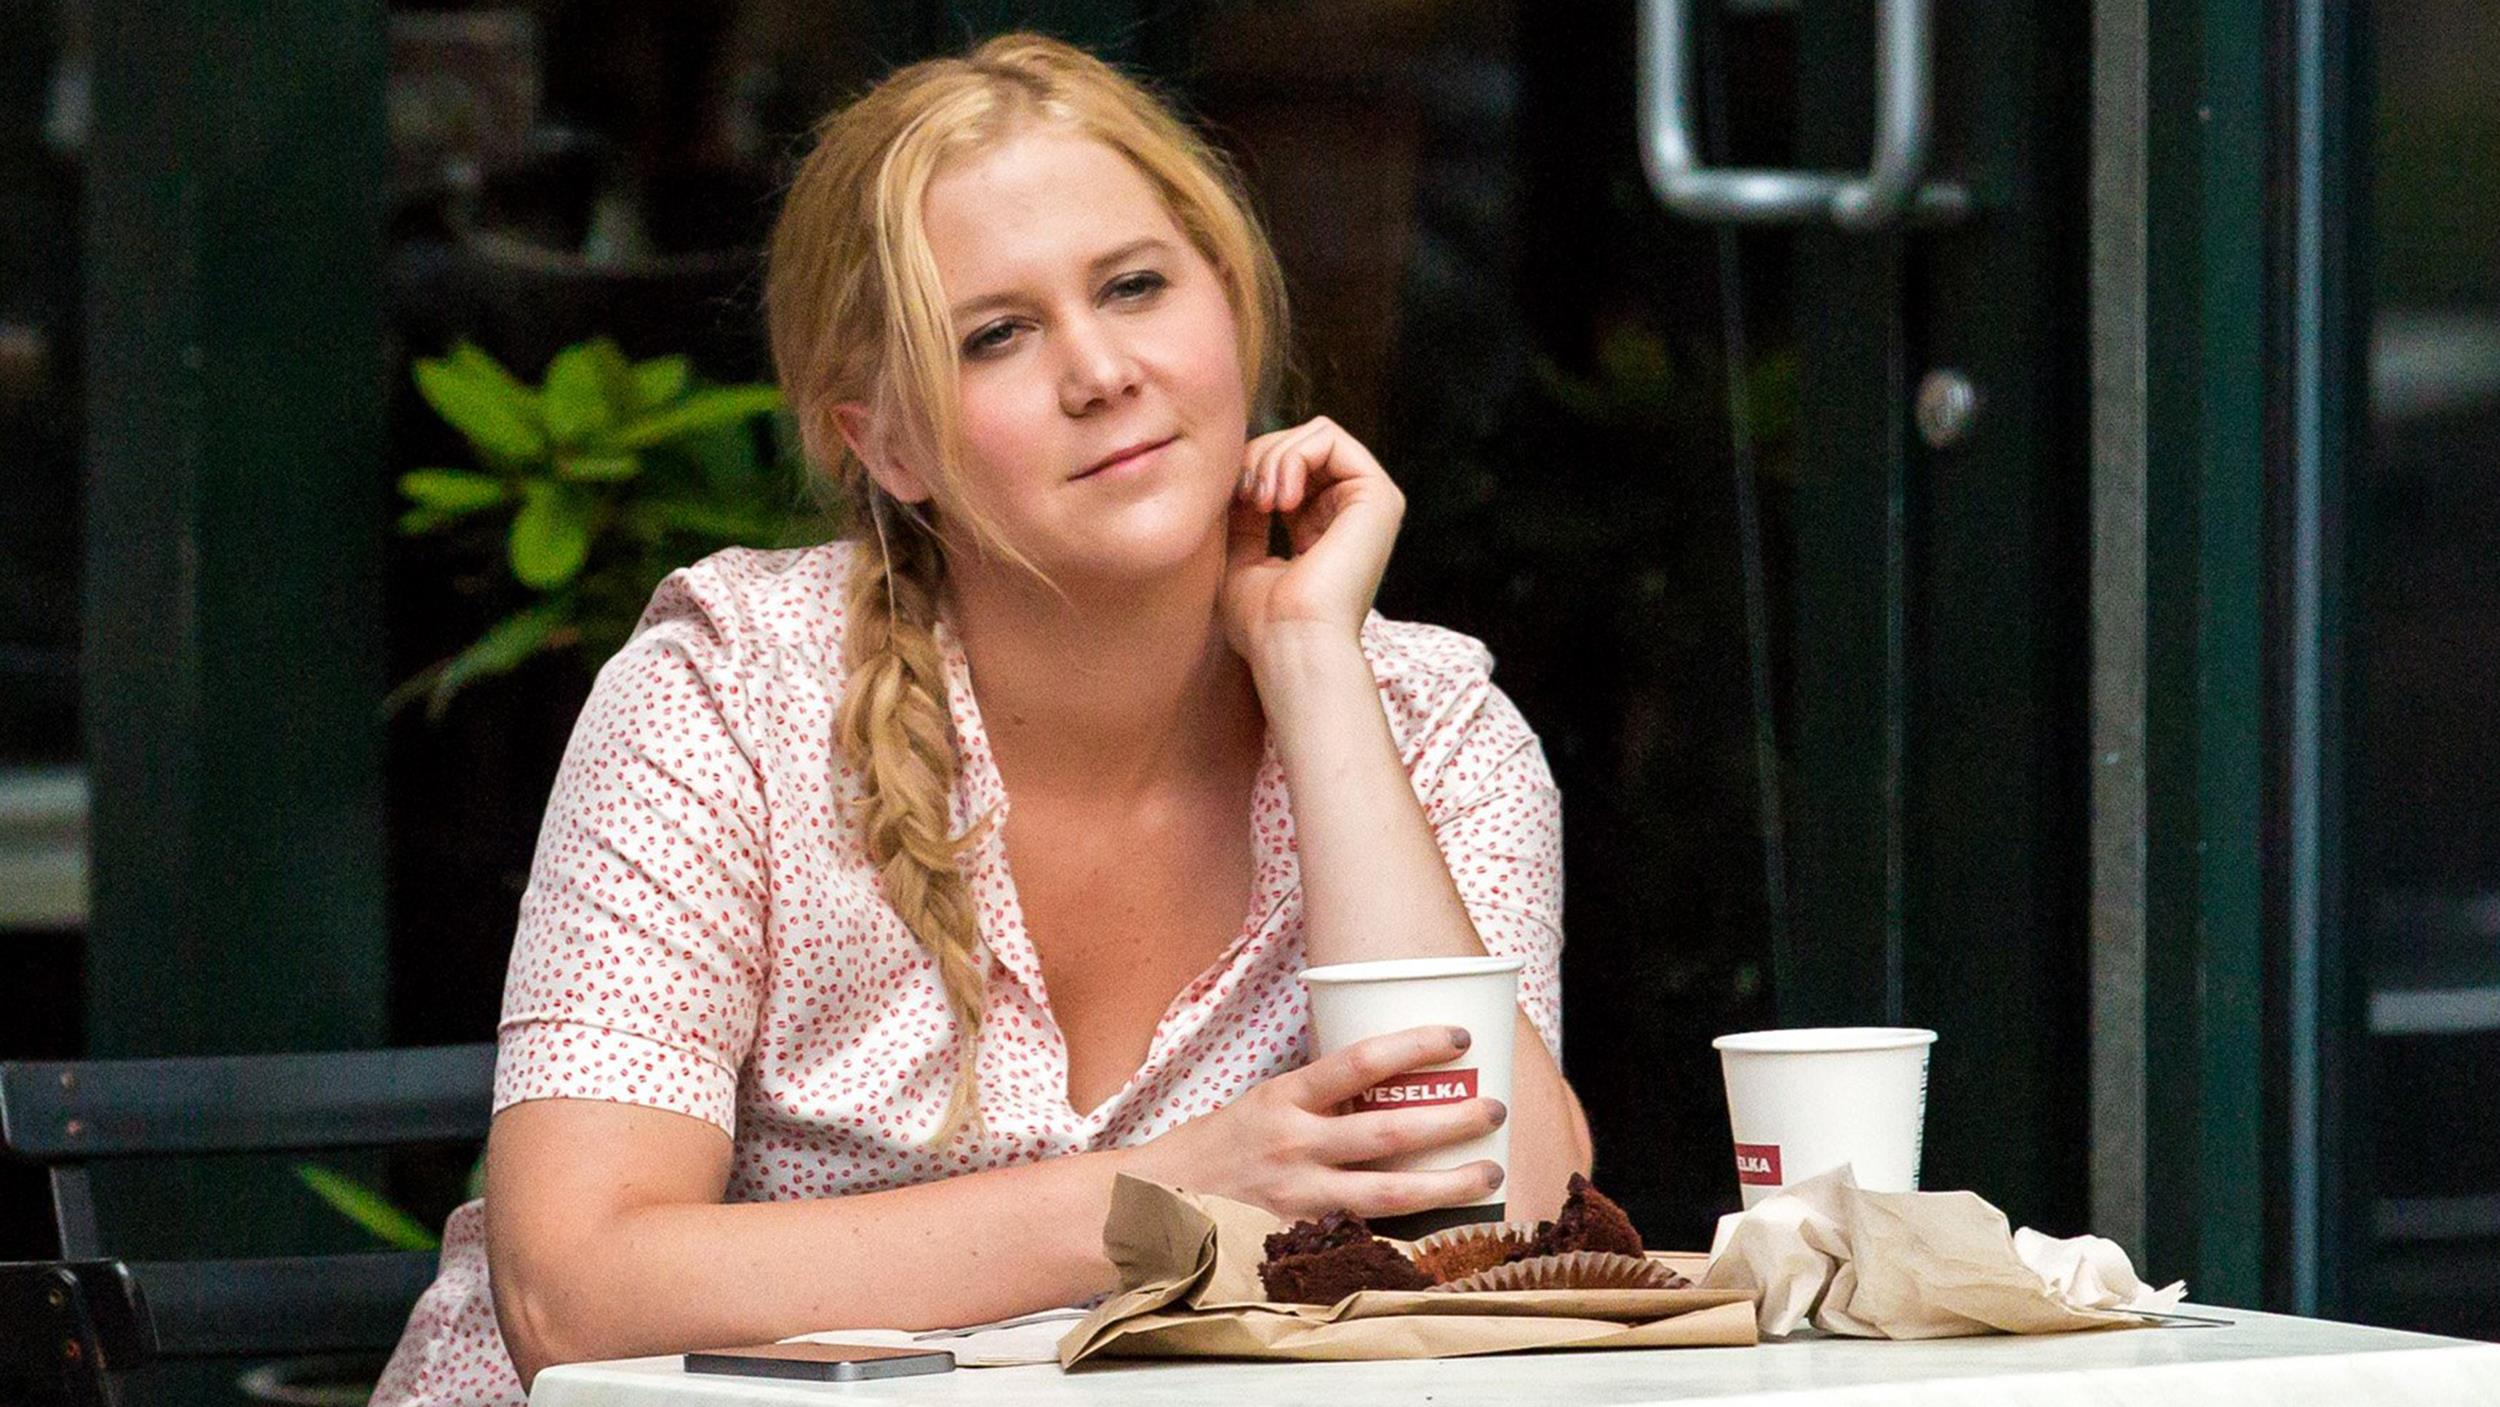 Amy Schumer Wallpapers Hd